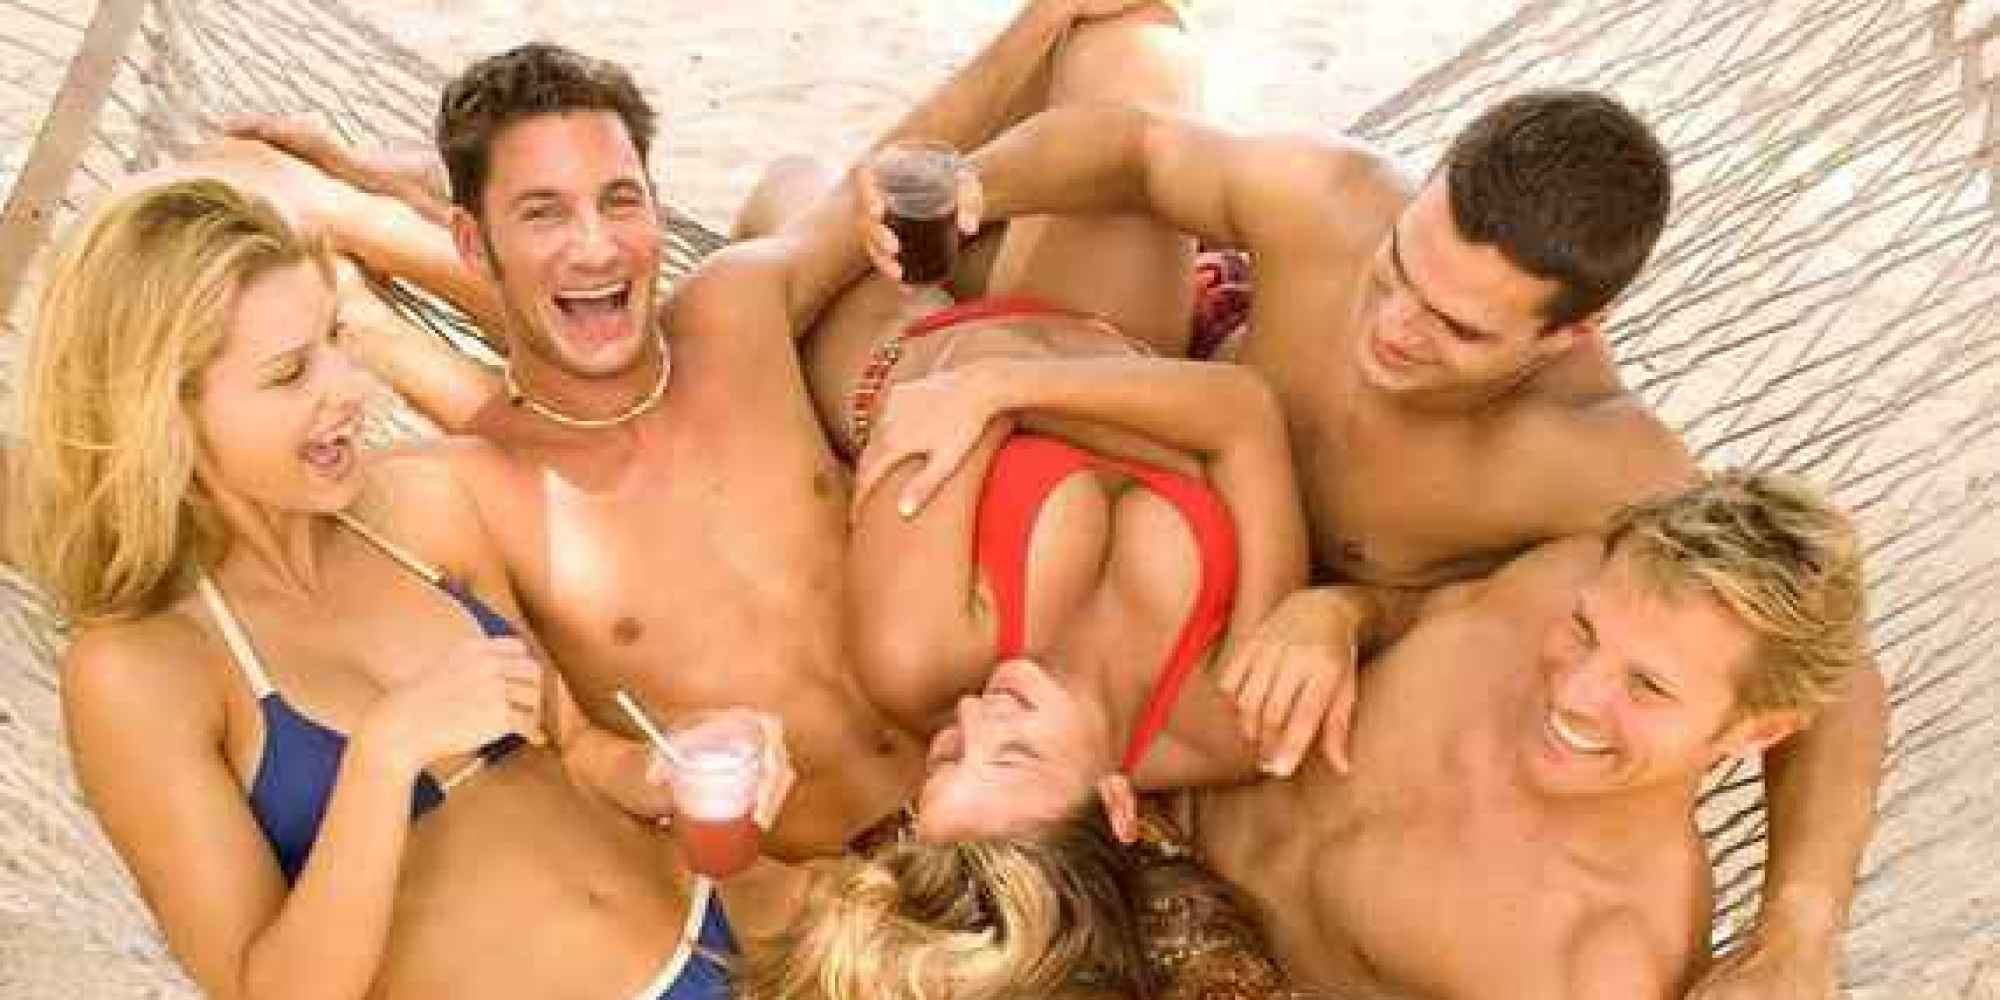 By: Sophie-Claire Hoeller. swingers club,resorts,Love & Sex,vacations,s